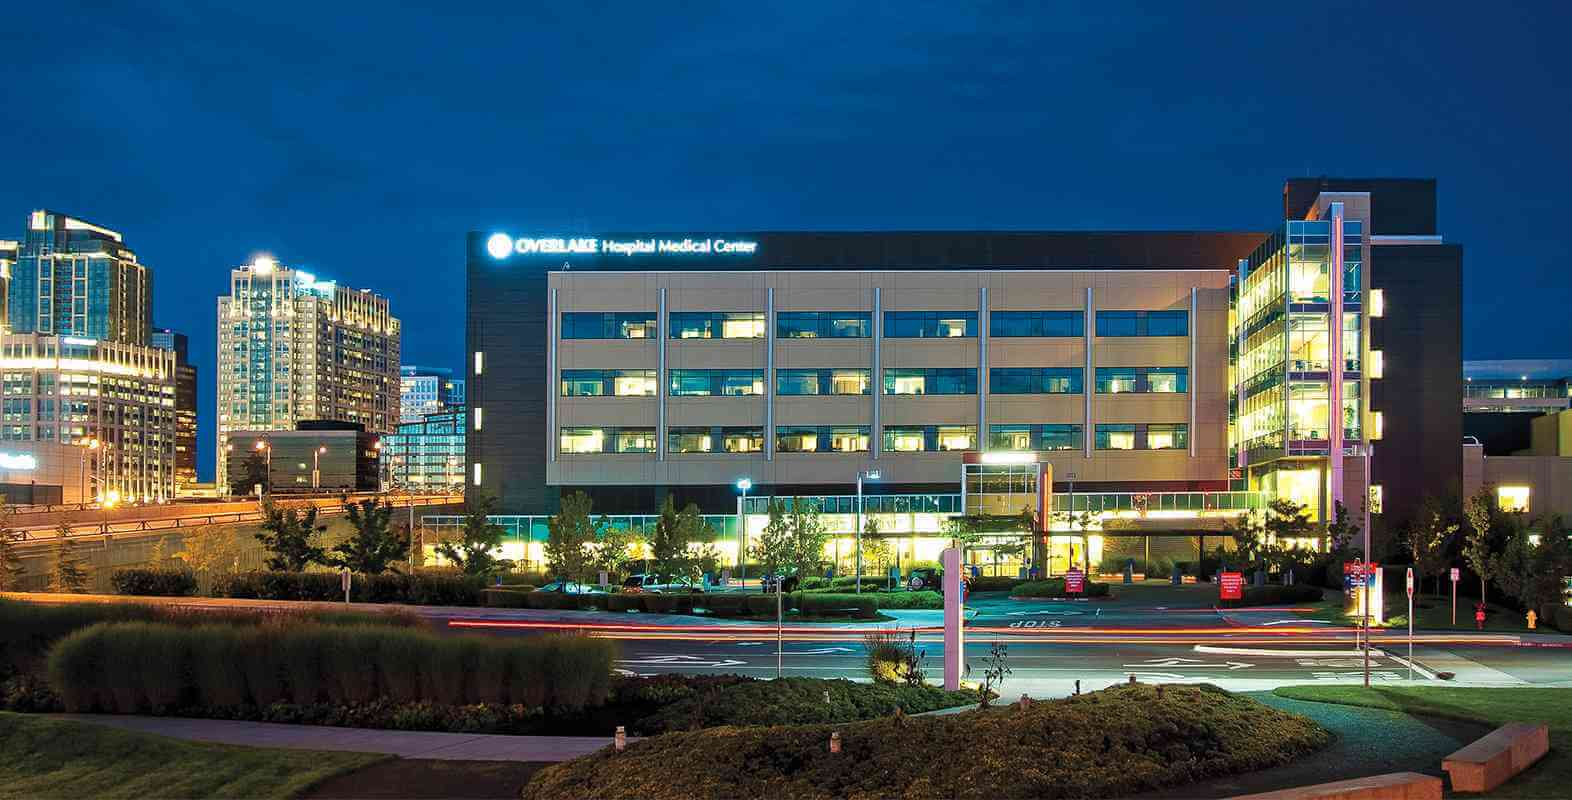 Overlake Medical Center image